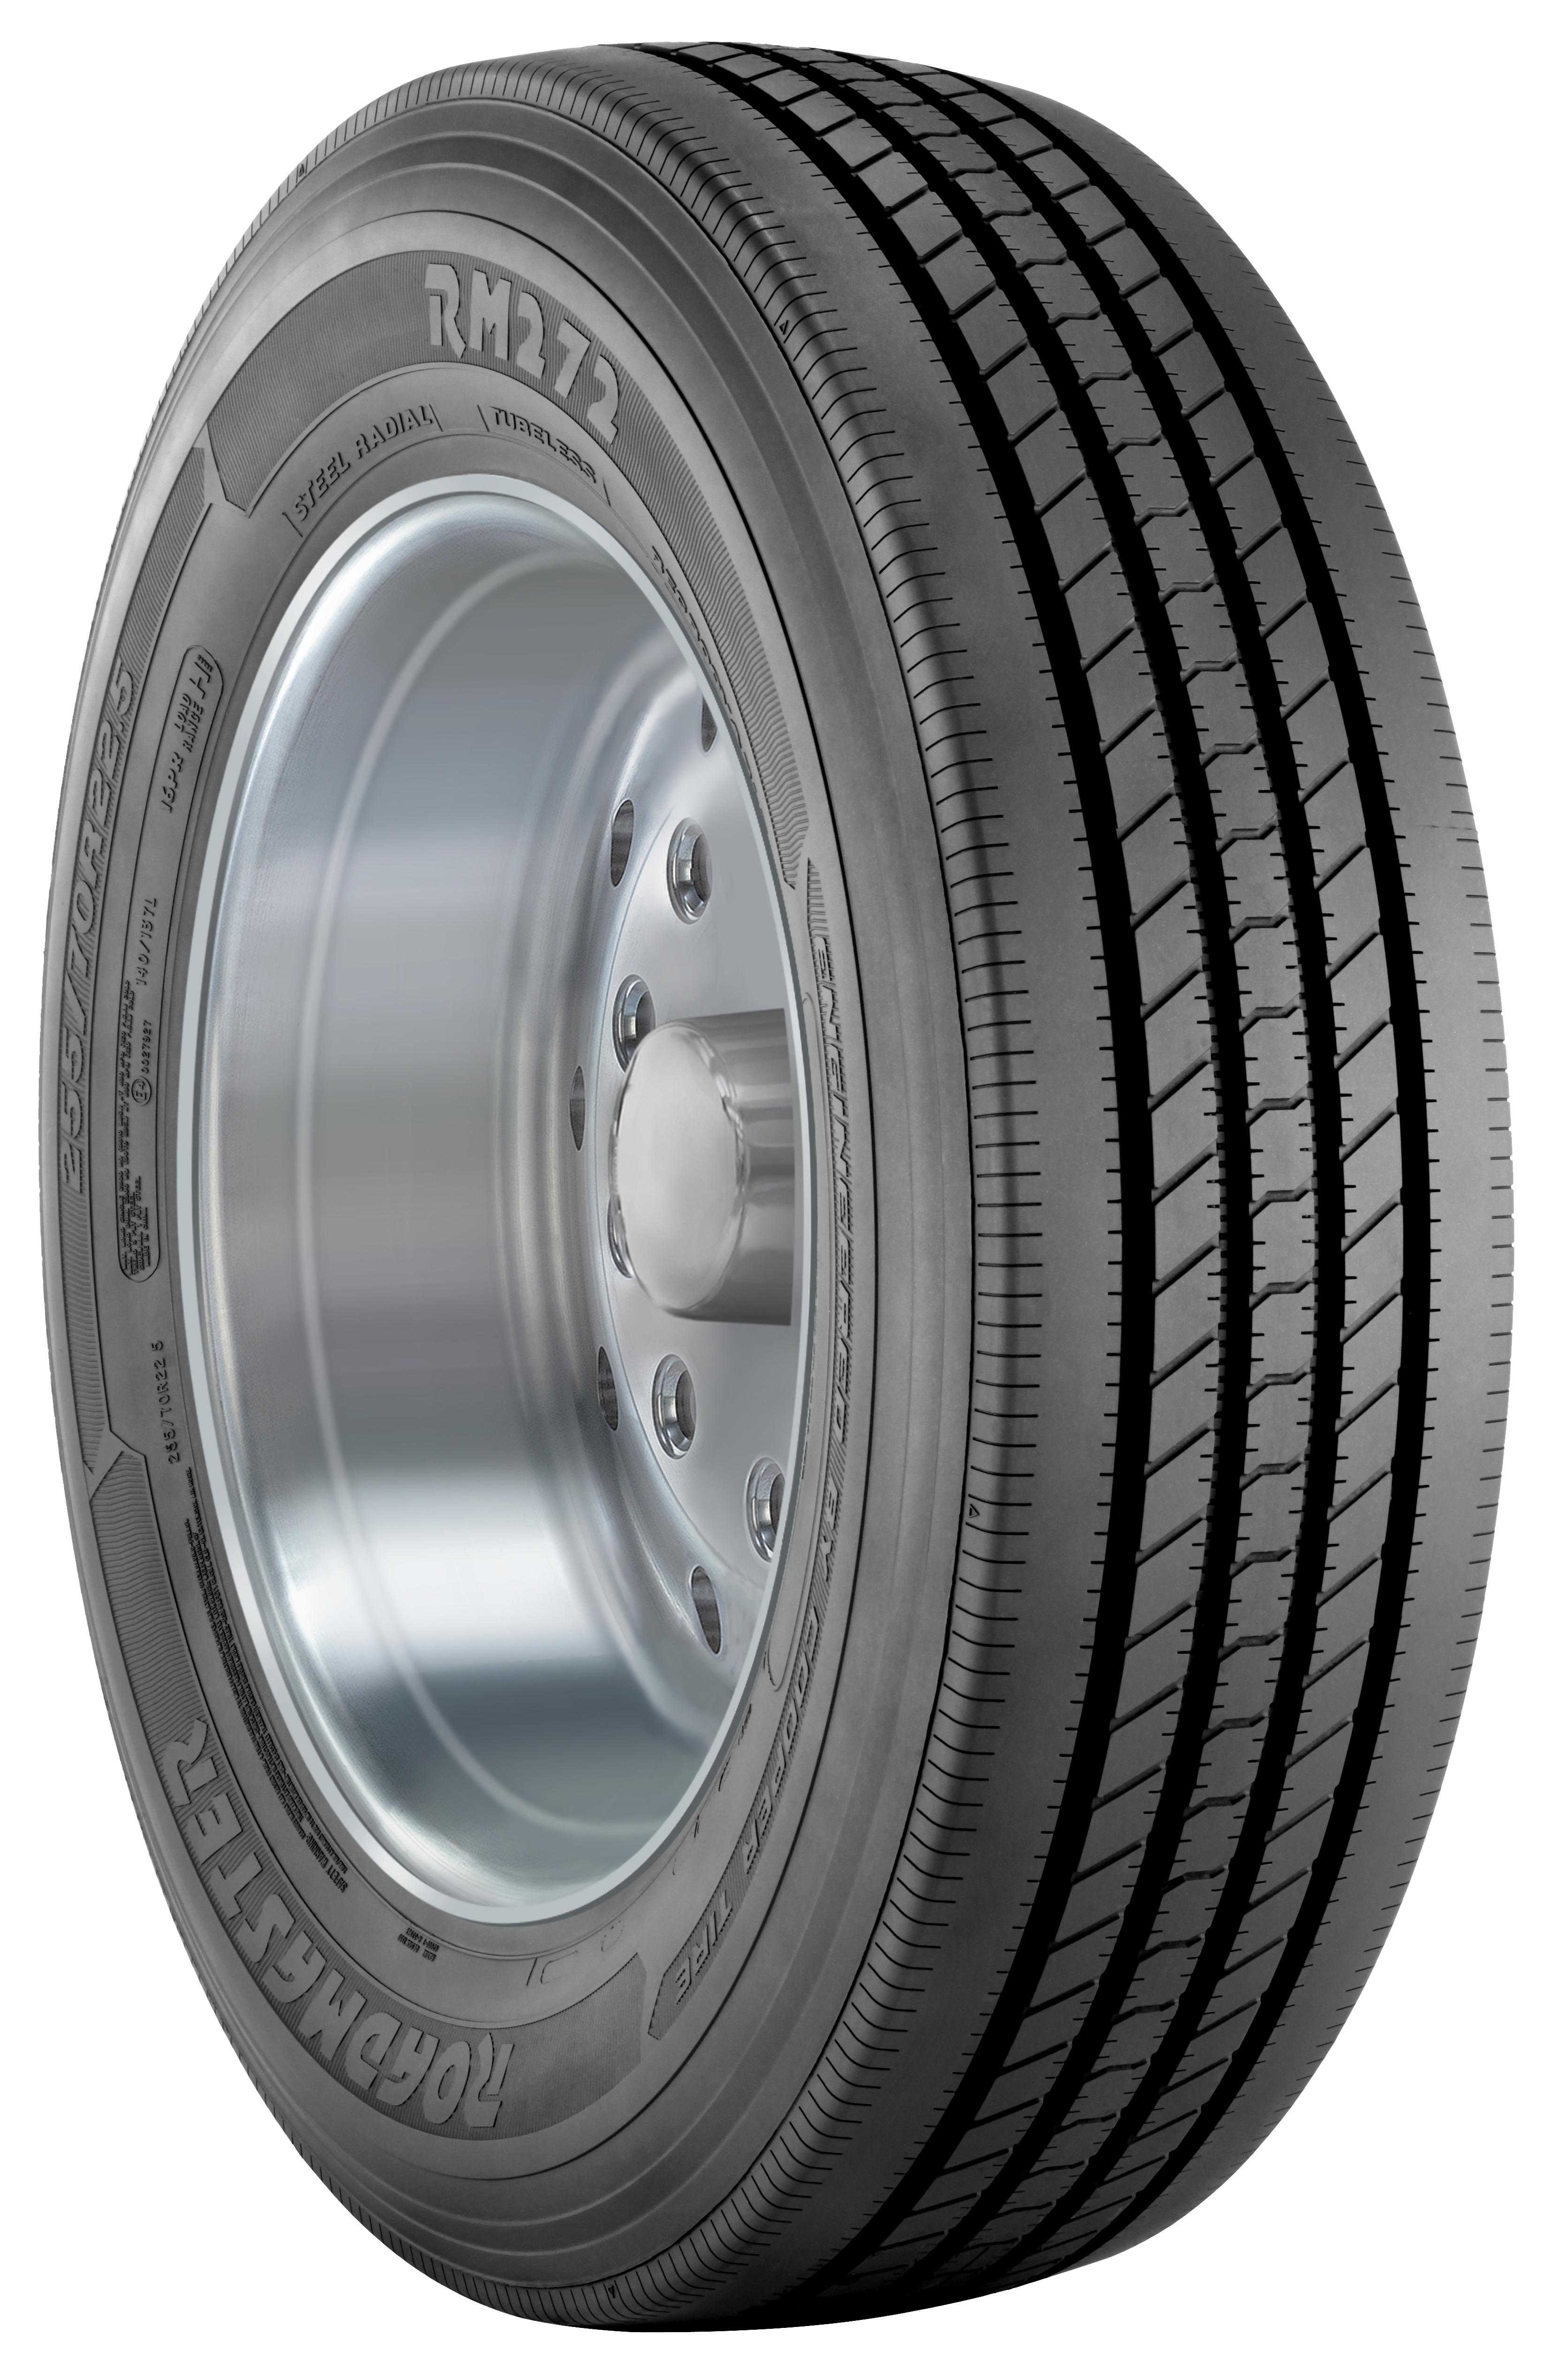 Cooper Adds 3 Sizes to Roadmaster RM272